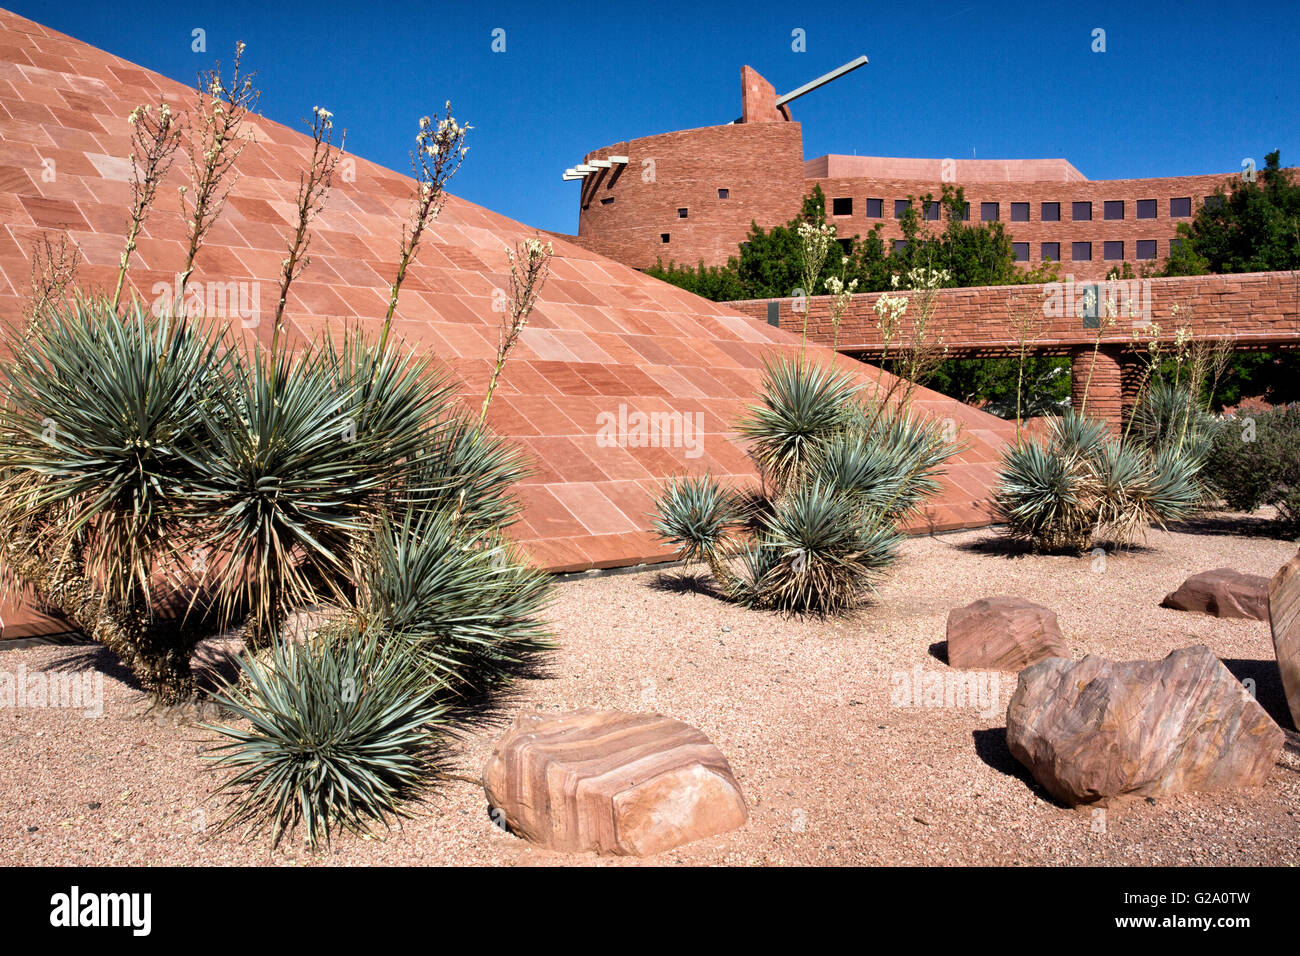 Clark County Government Center in Las Vegas - Stock Image